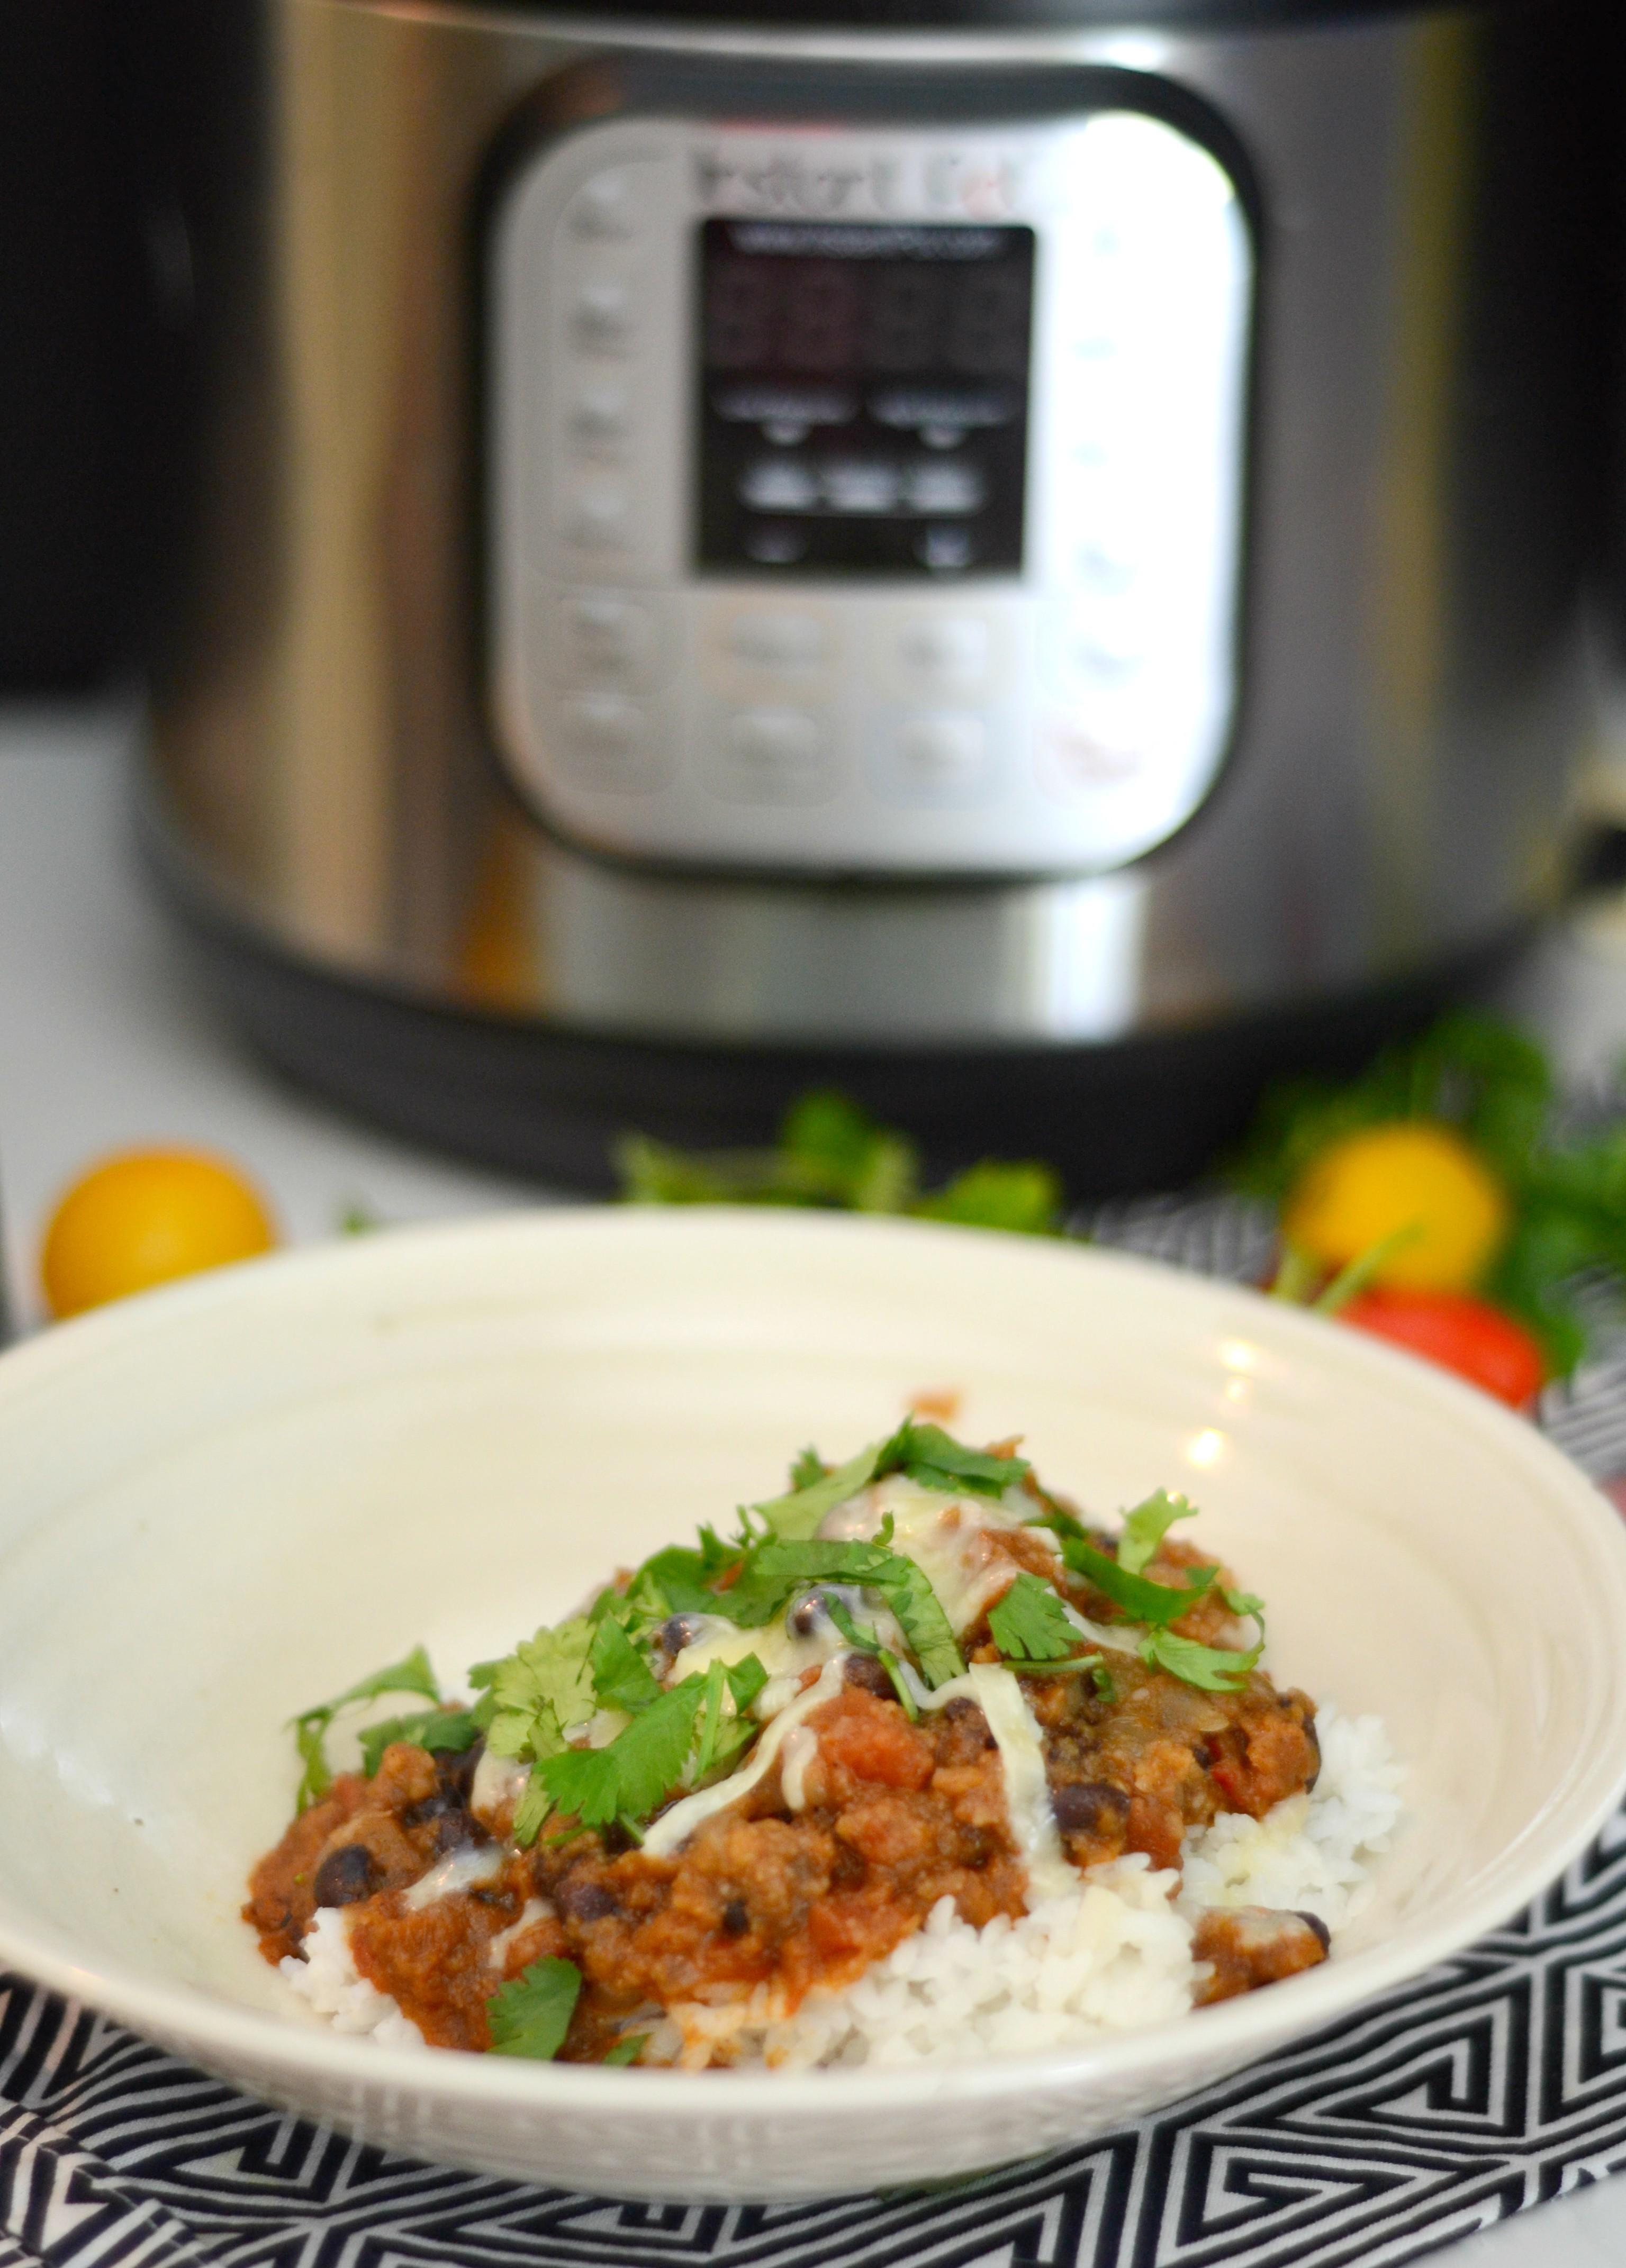 Bowl of Vegetarian Chili with Instant Pot in background